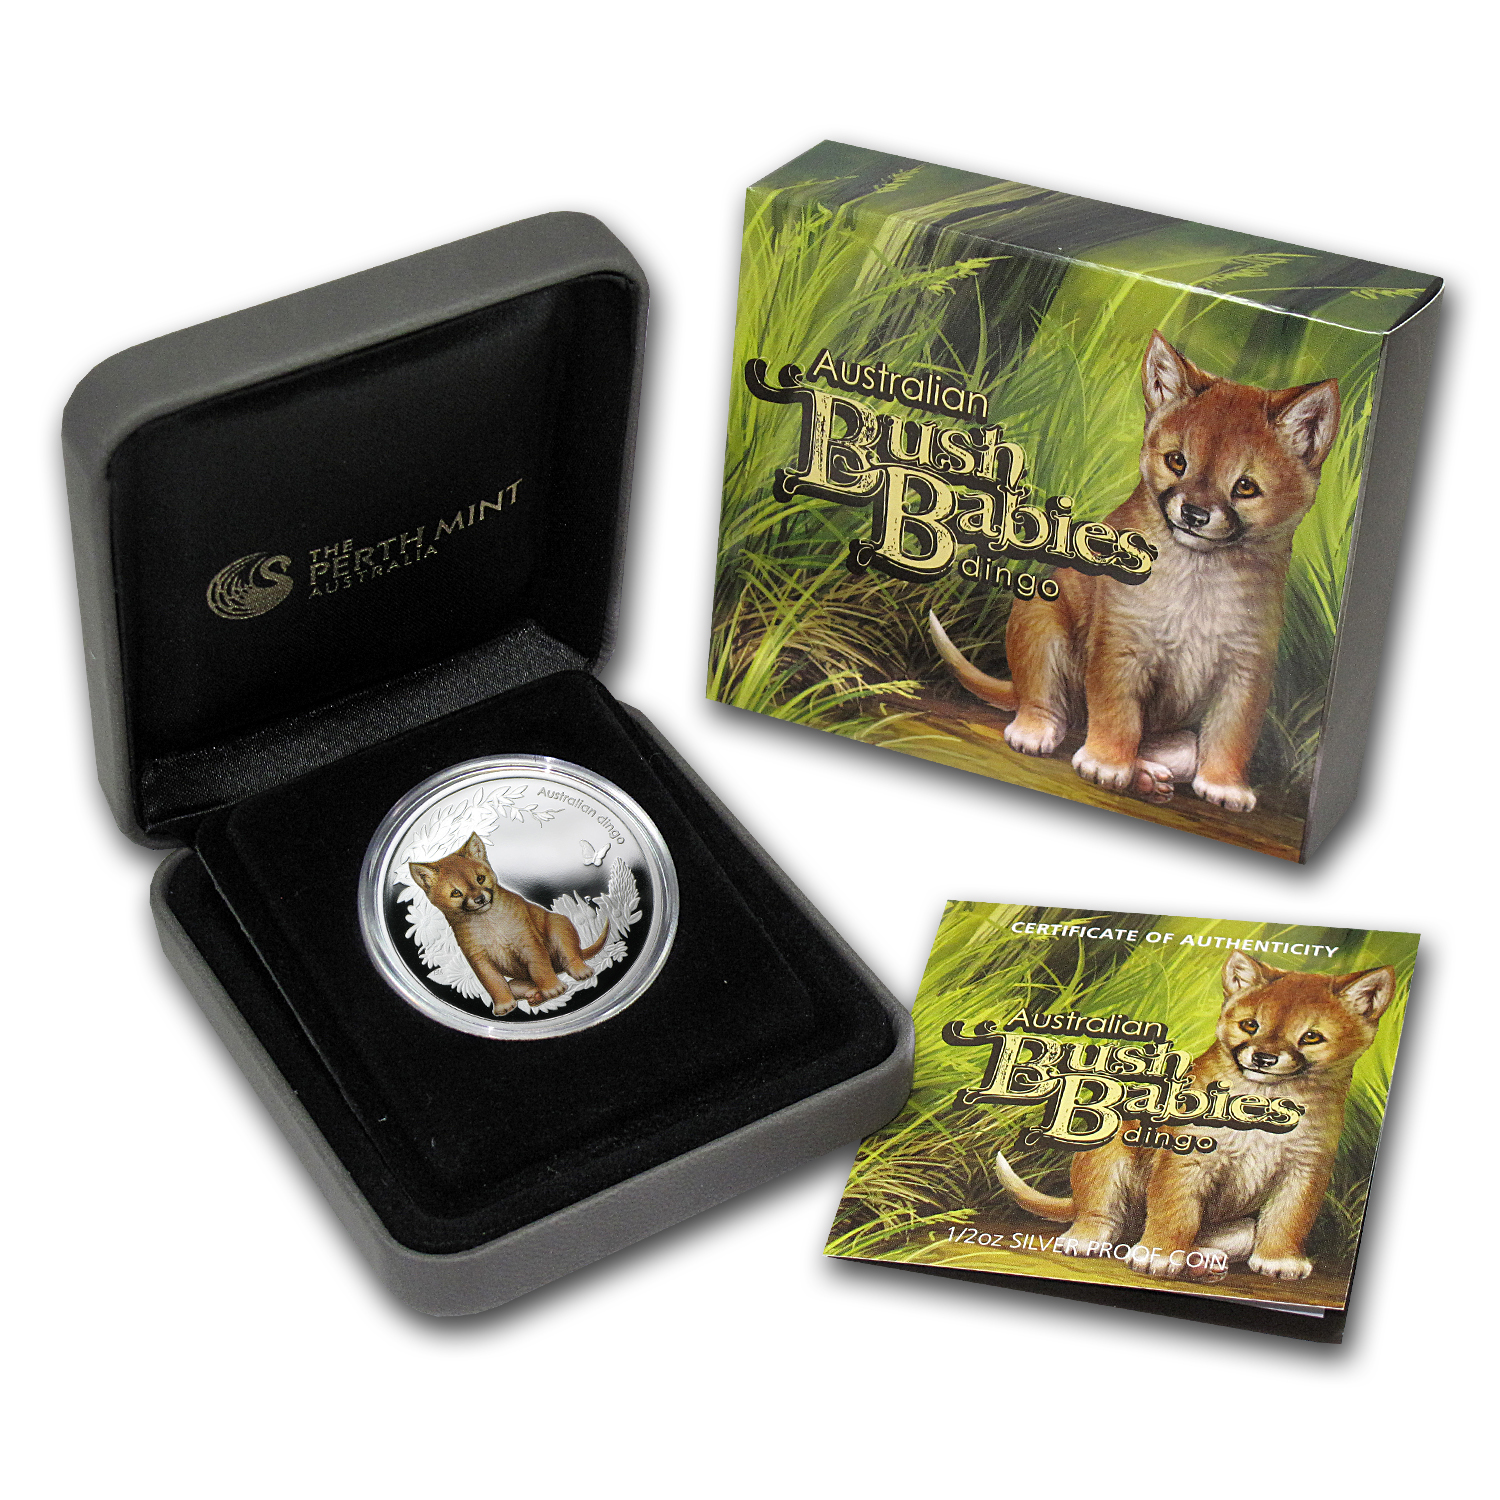 2011 1/2 oz Silver Australian Bush Babies Dingo Proof